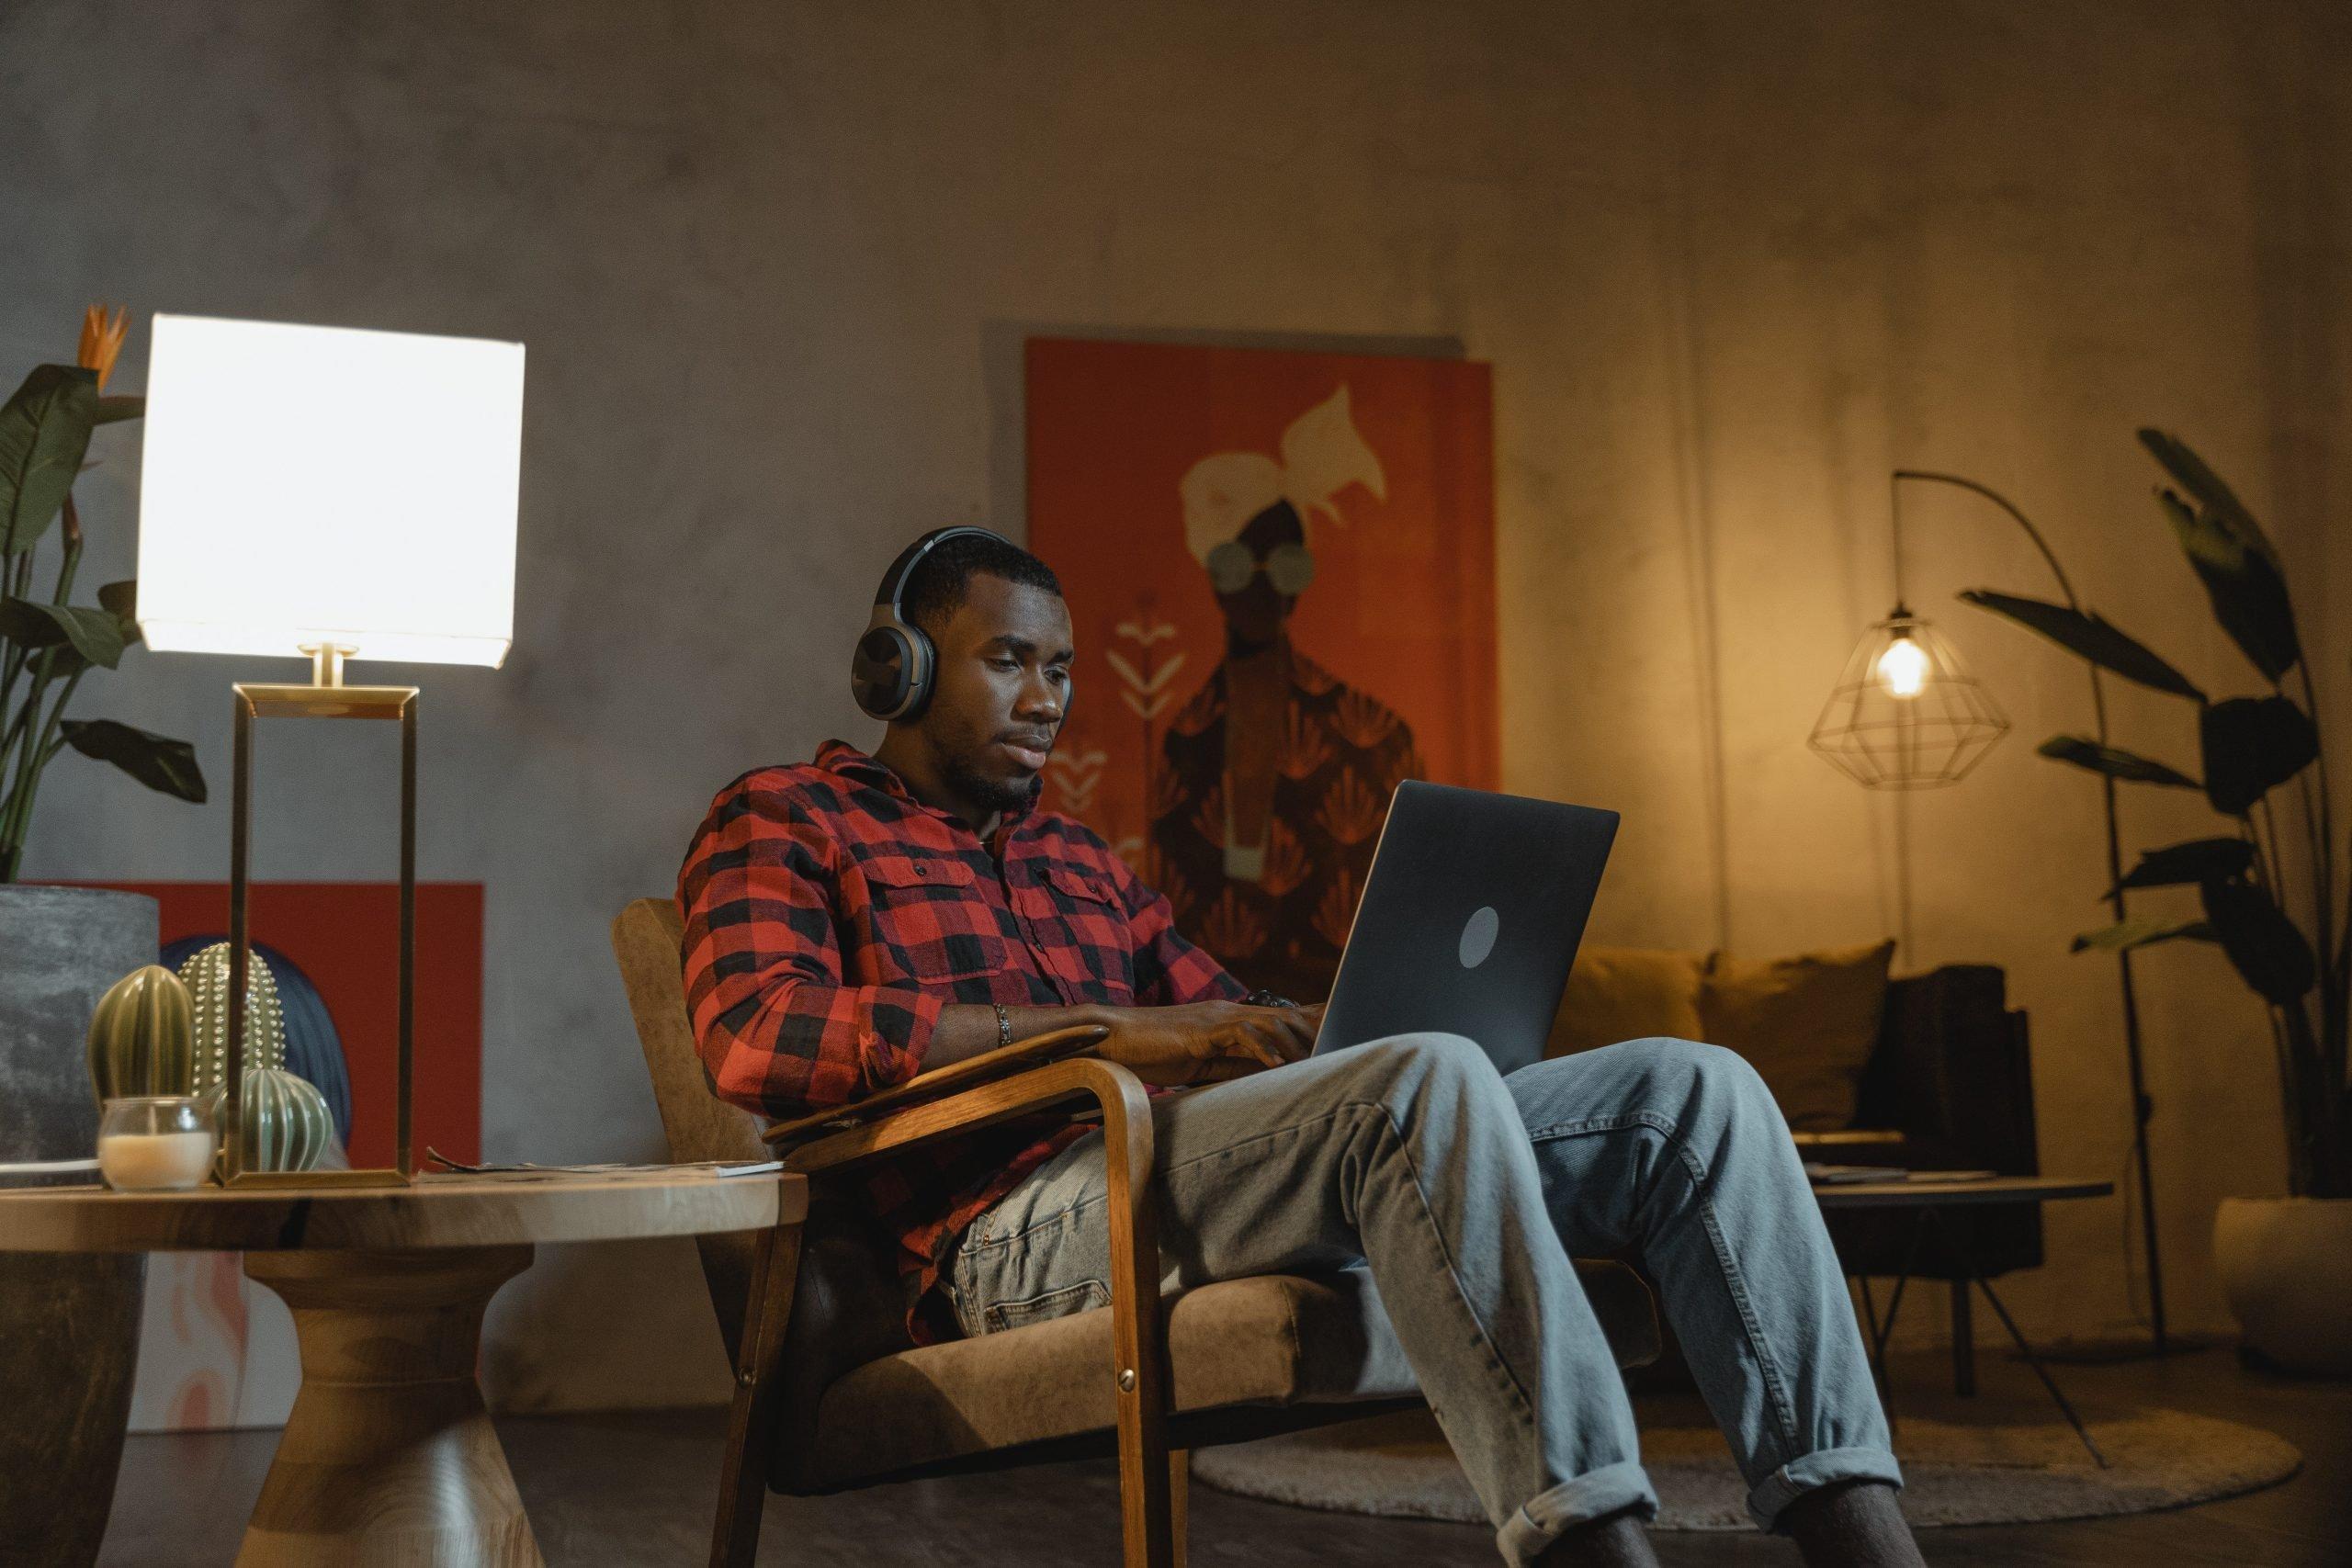 Young man studying at home with laptop and headphones